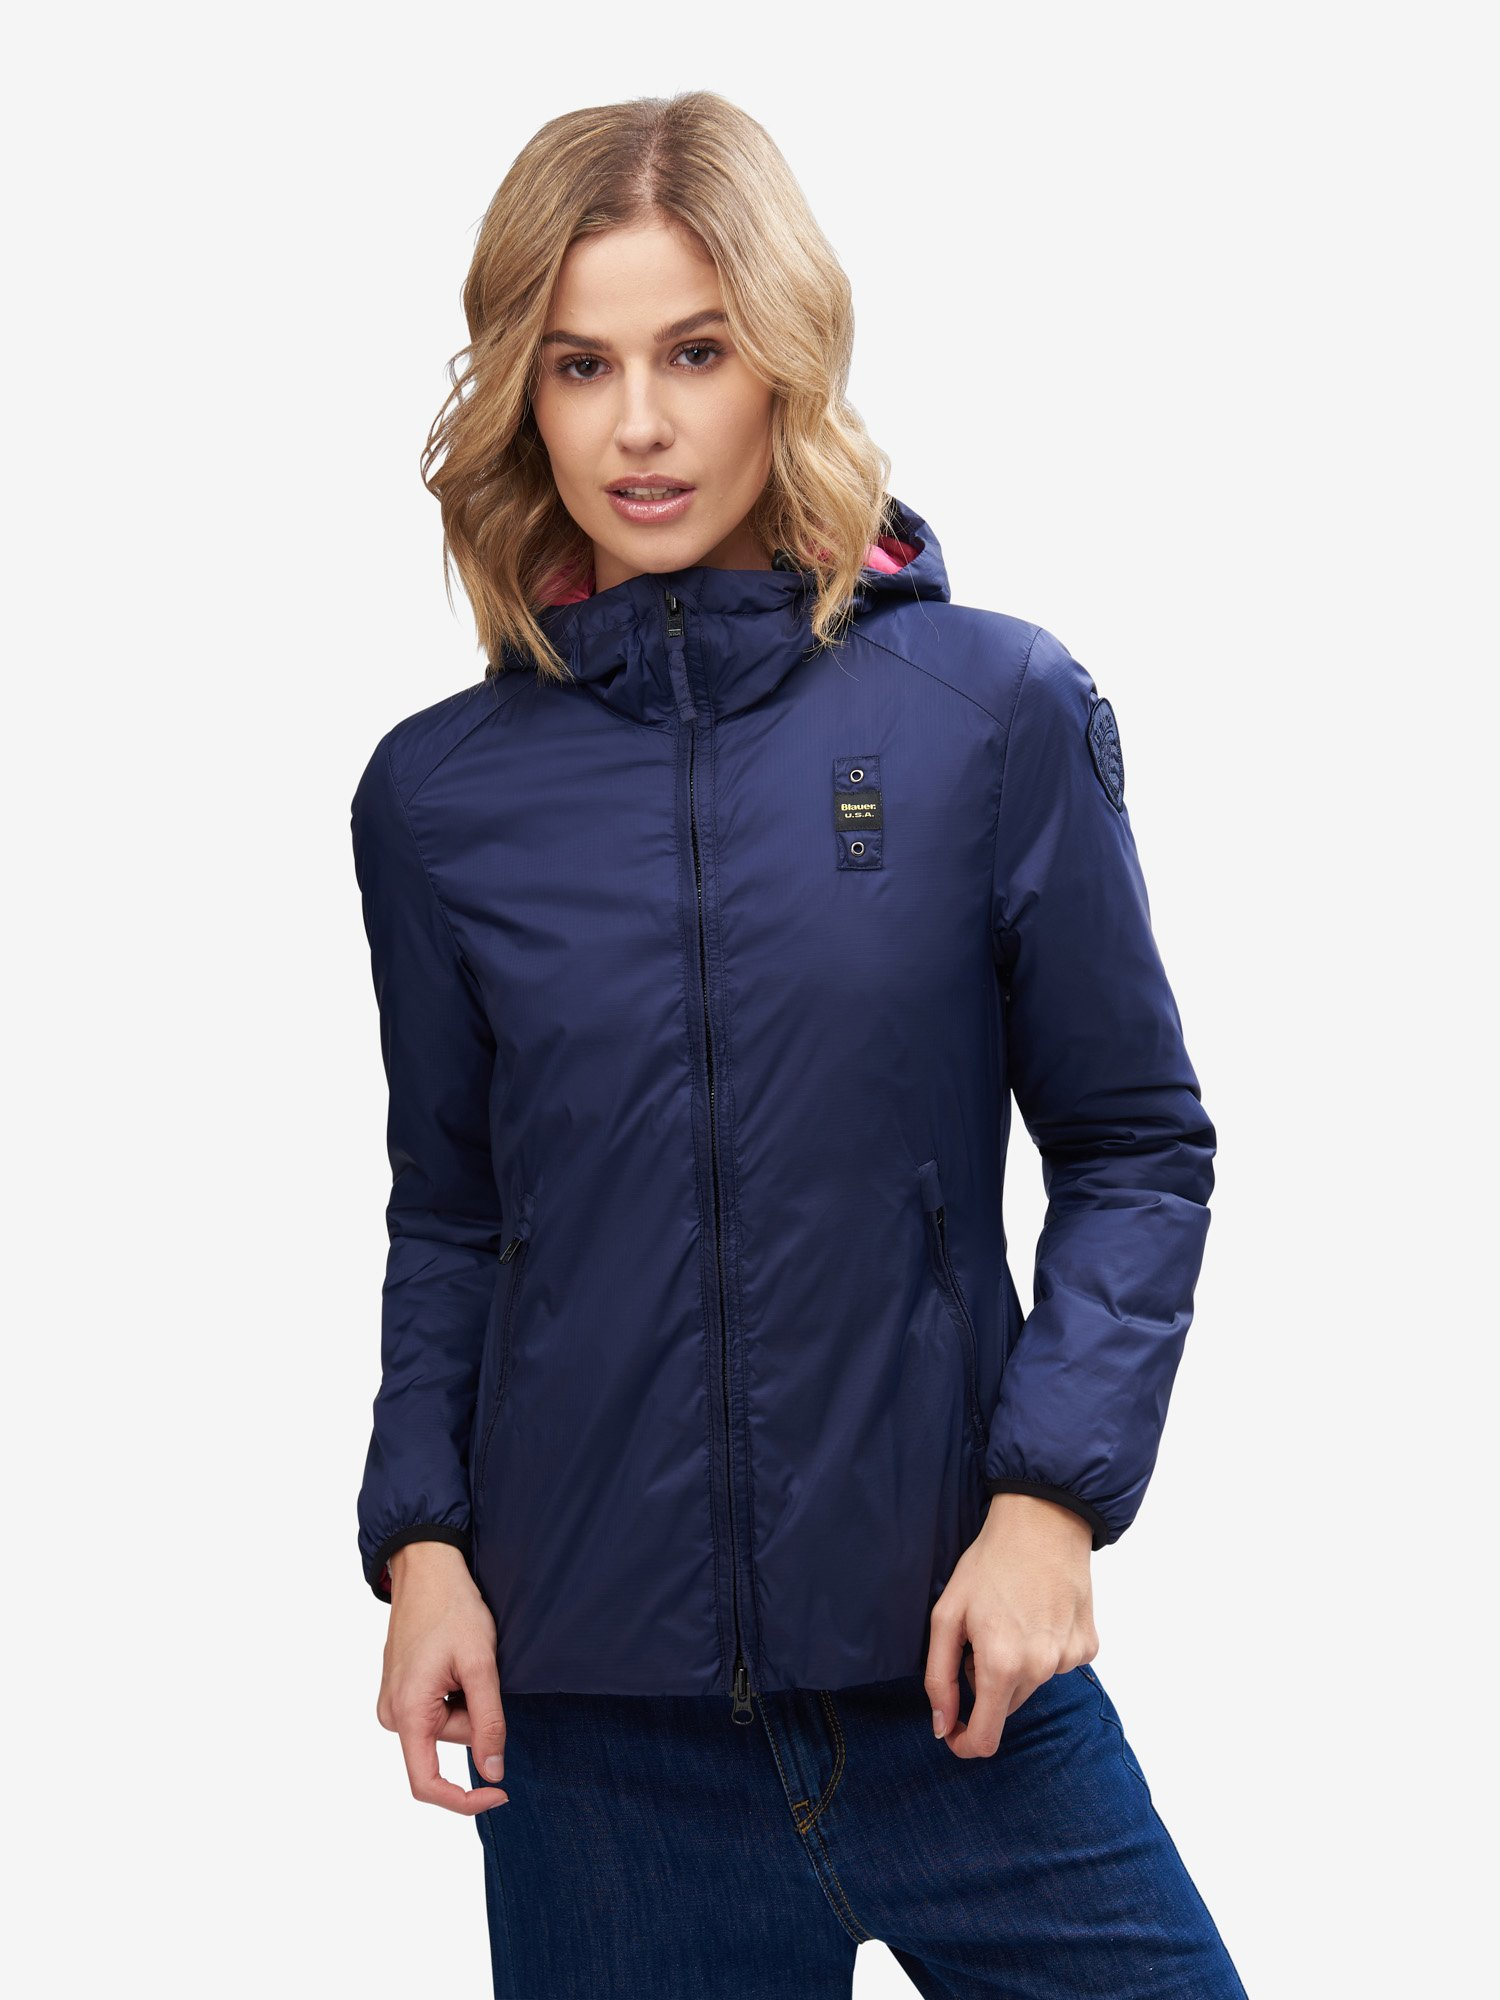 CROSS LIGHTWEIGHT PADDED JACKET - Blauer